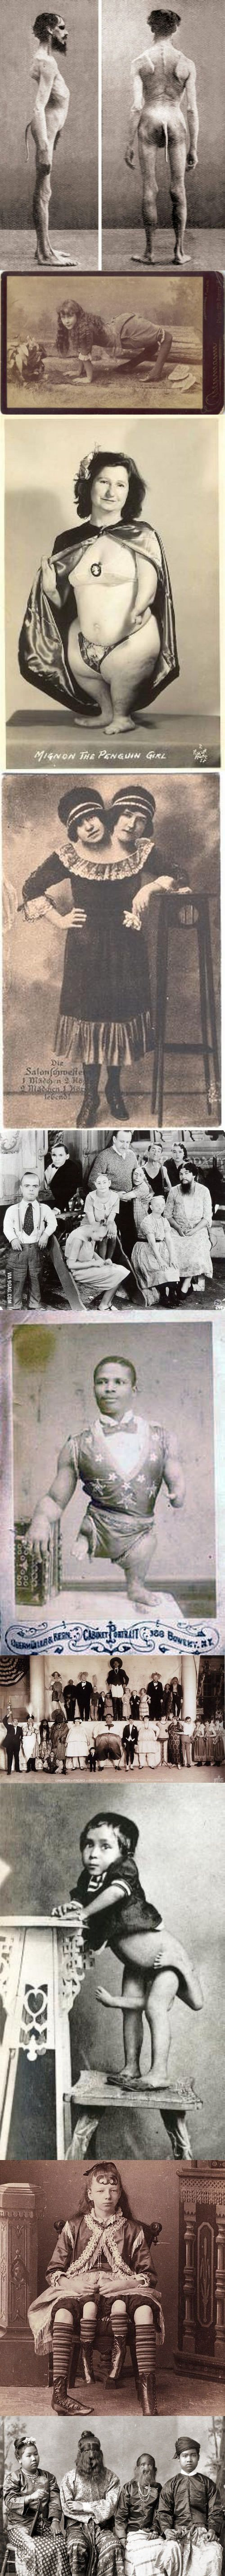 An Album Of Old Fashion Looking Freak Show People